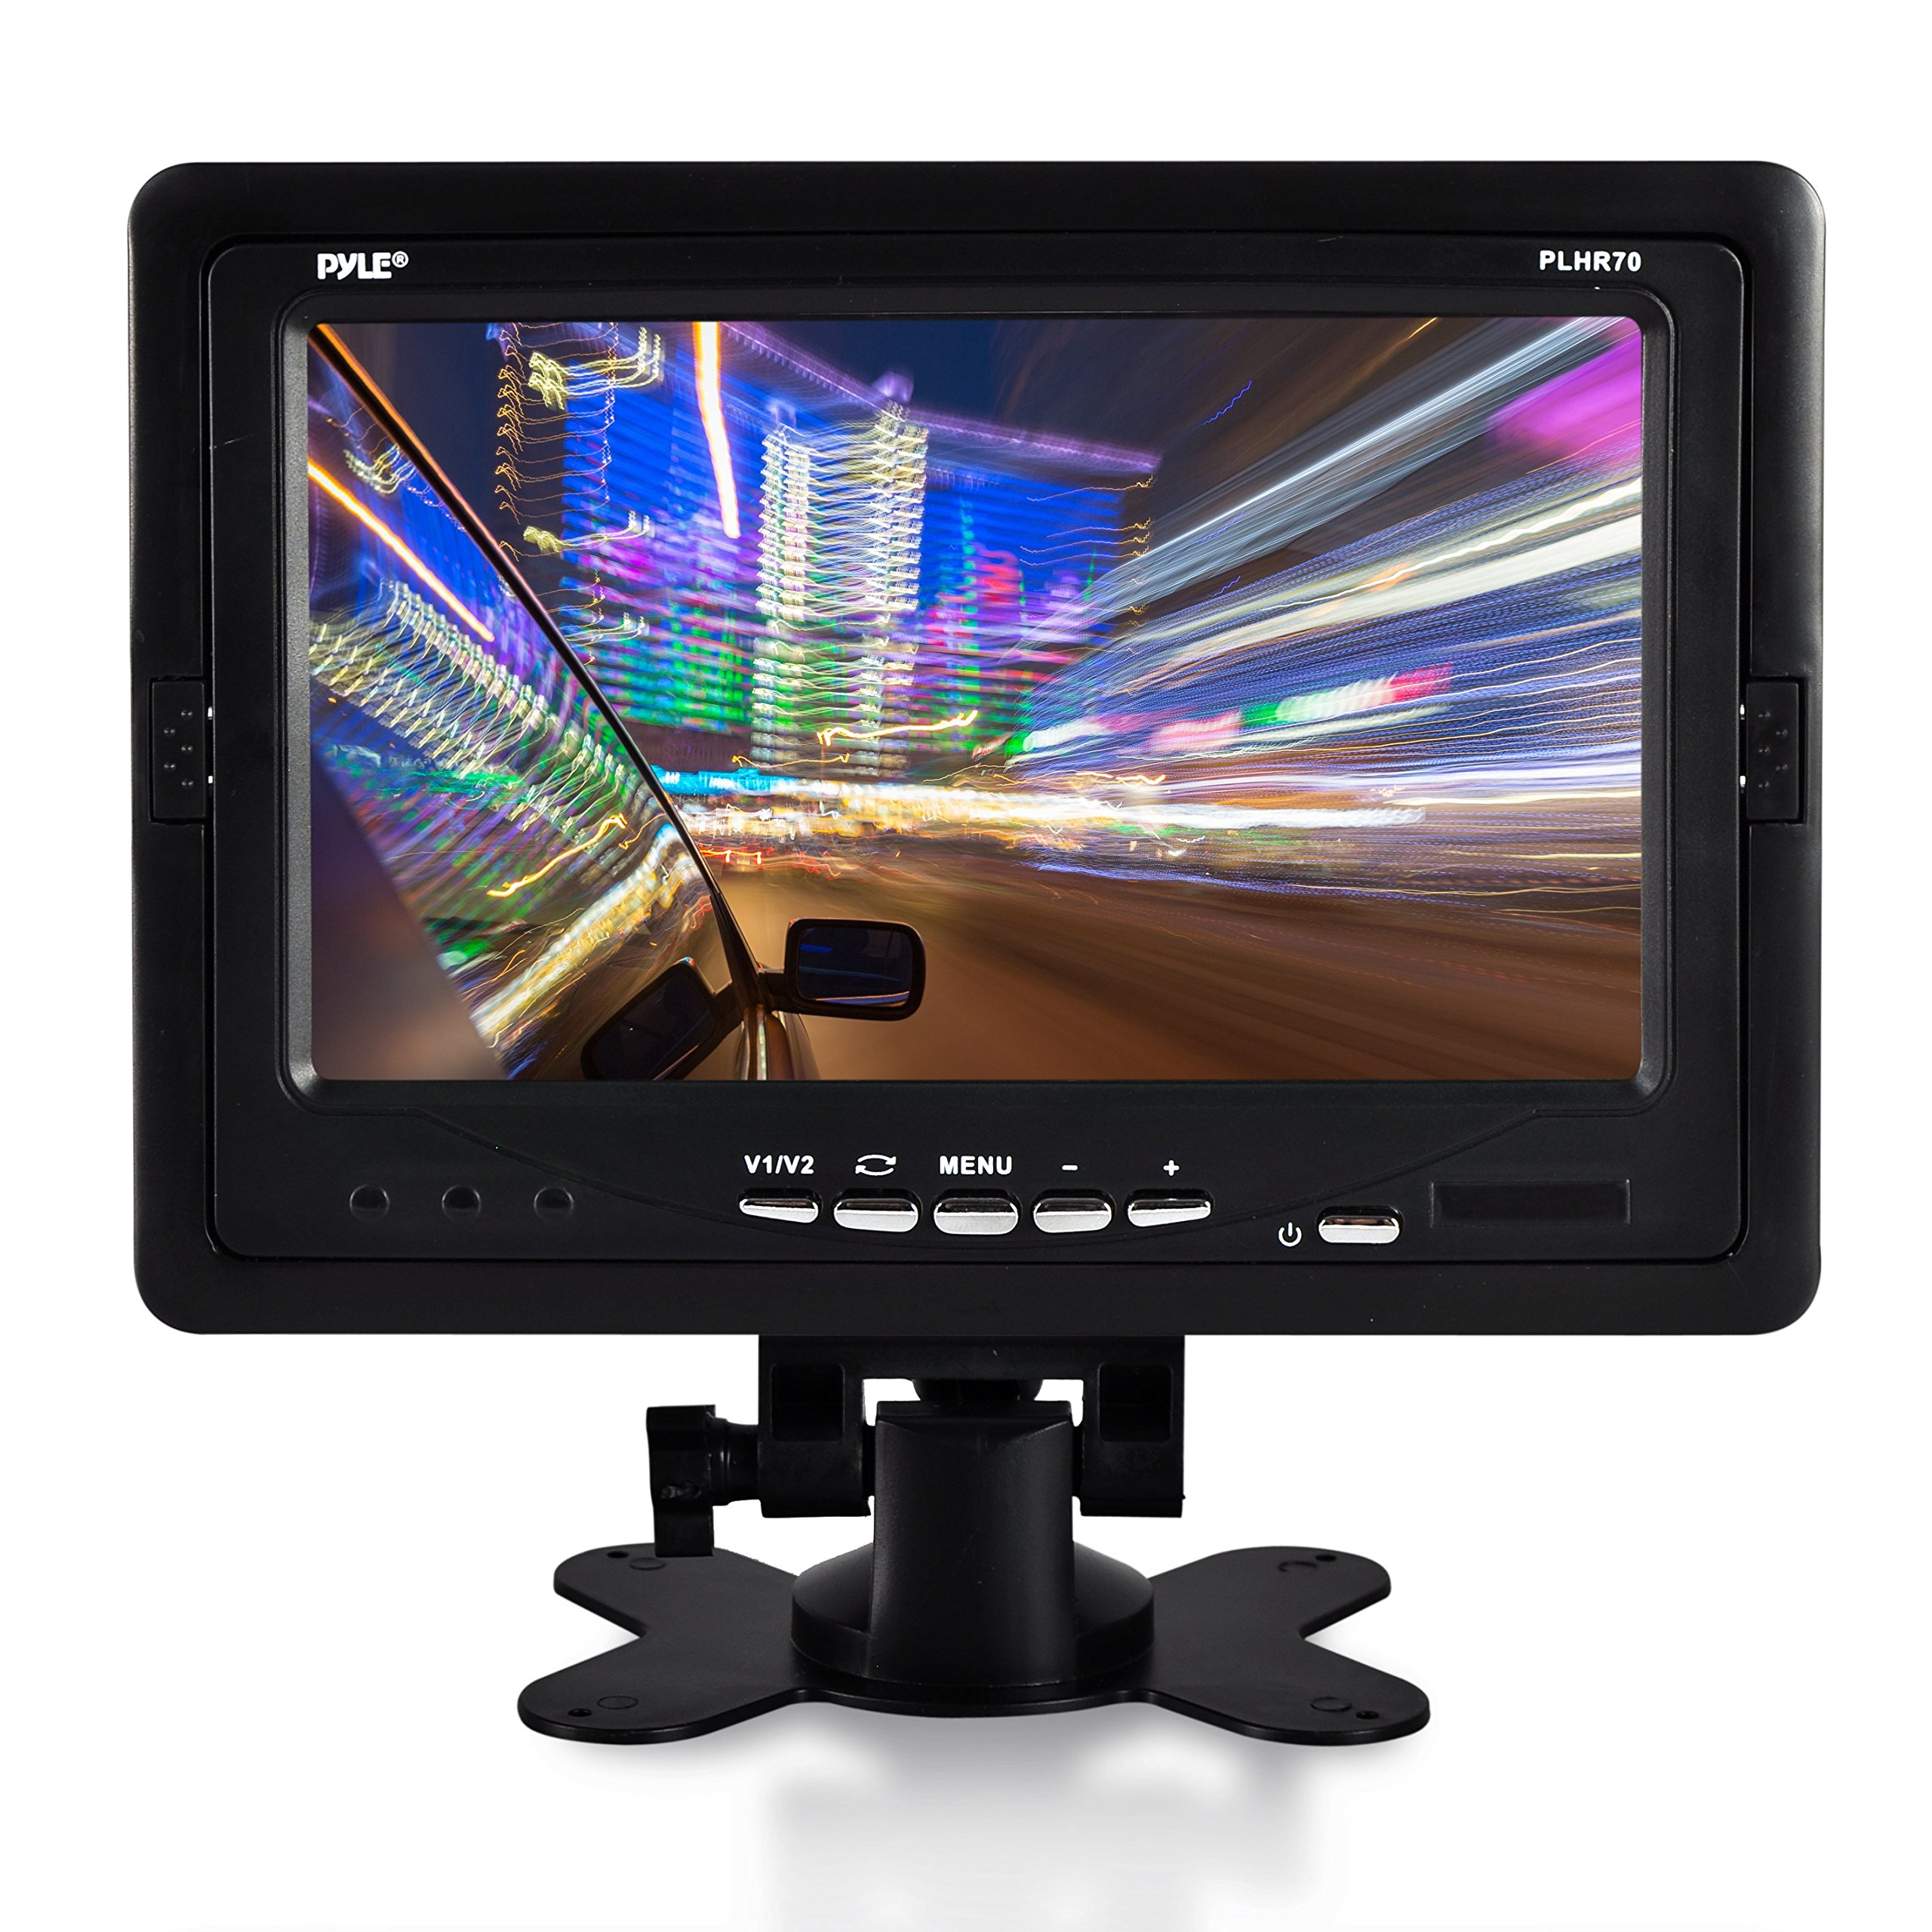 Premium 7'' Inches Rearview Car LCD Monitor by Pyle - Parking Monitor Assistant with Wireless Remote Control - Full Color Wide Screen - Can Be Installed in Headrest Post (PLHR70) by Pyle